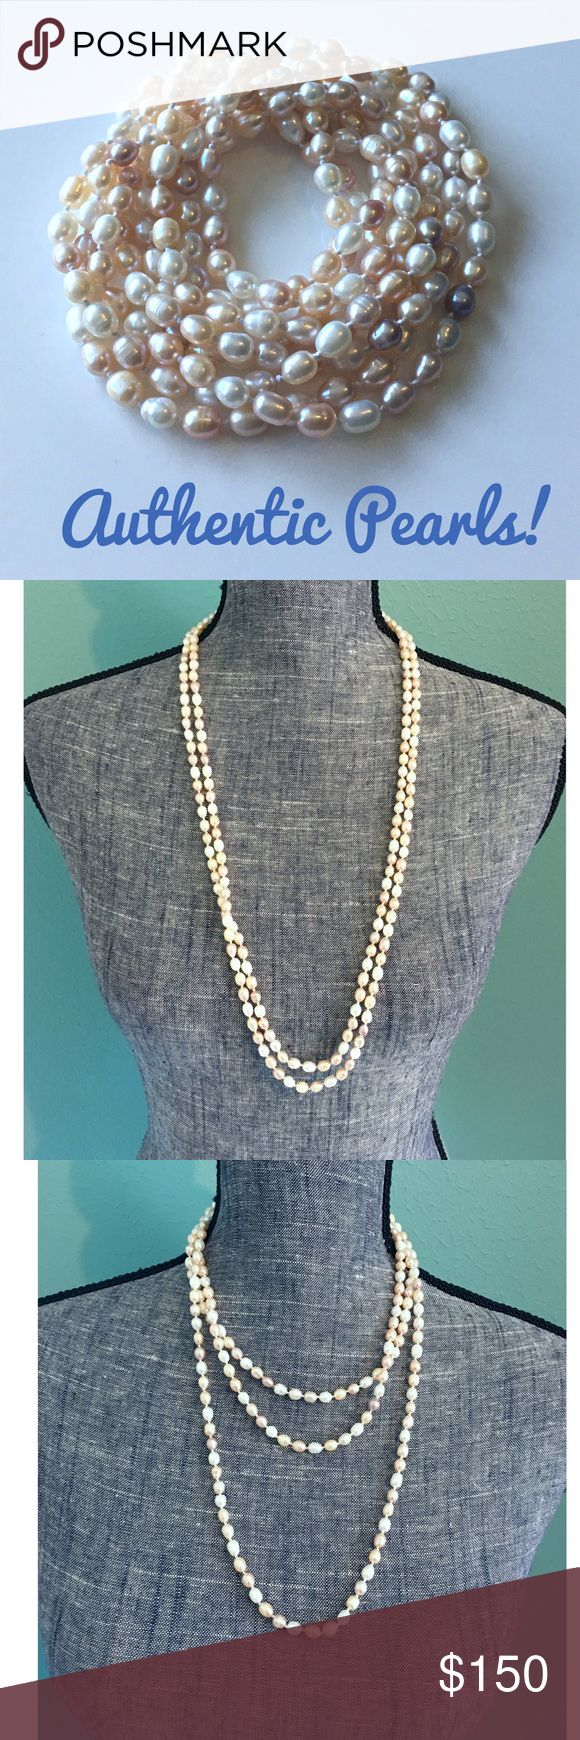 "Pastel Freshwater Cultured Pearl Long Necklace Excellent & gorgeous pastel Cultured Pearls. Super long for flapper look or can be worn multi-strand. 68"" long! Jewelry Necklaces"